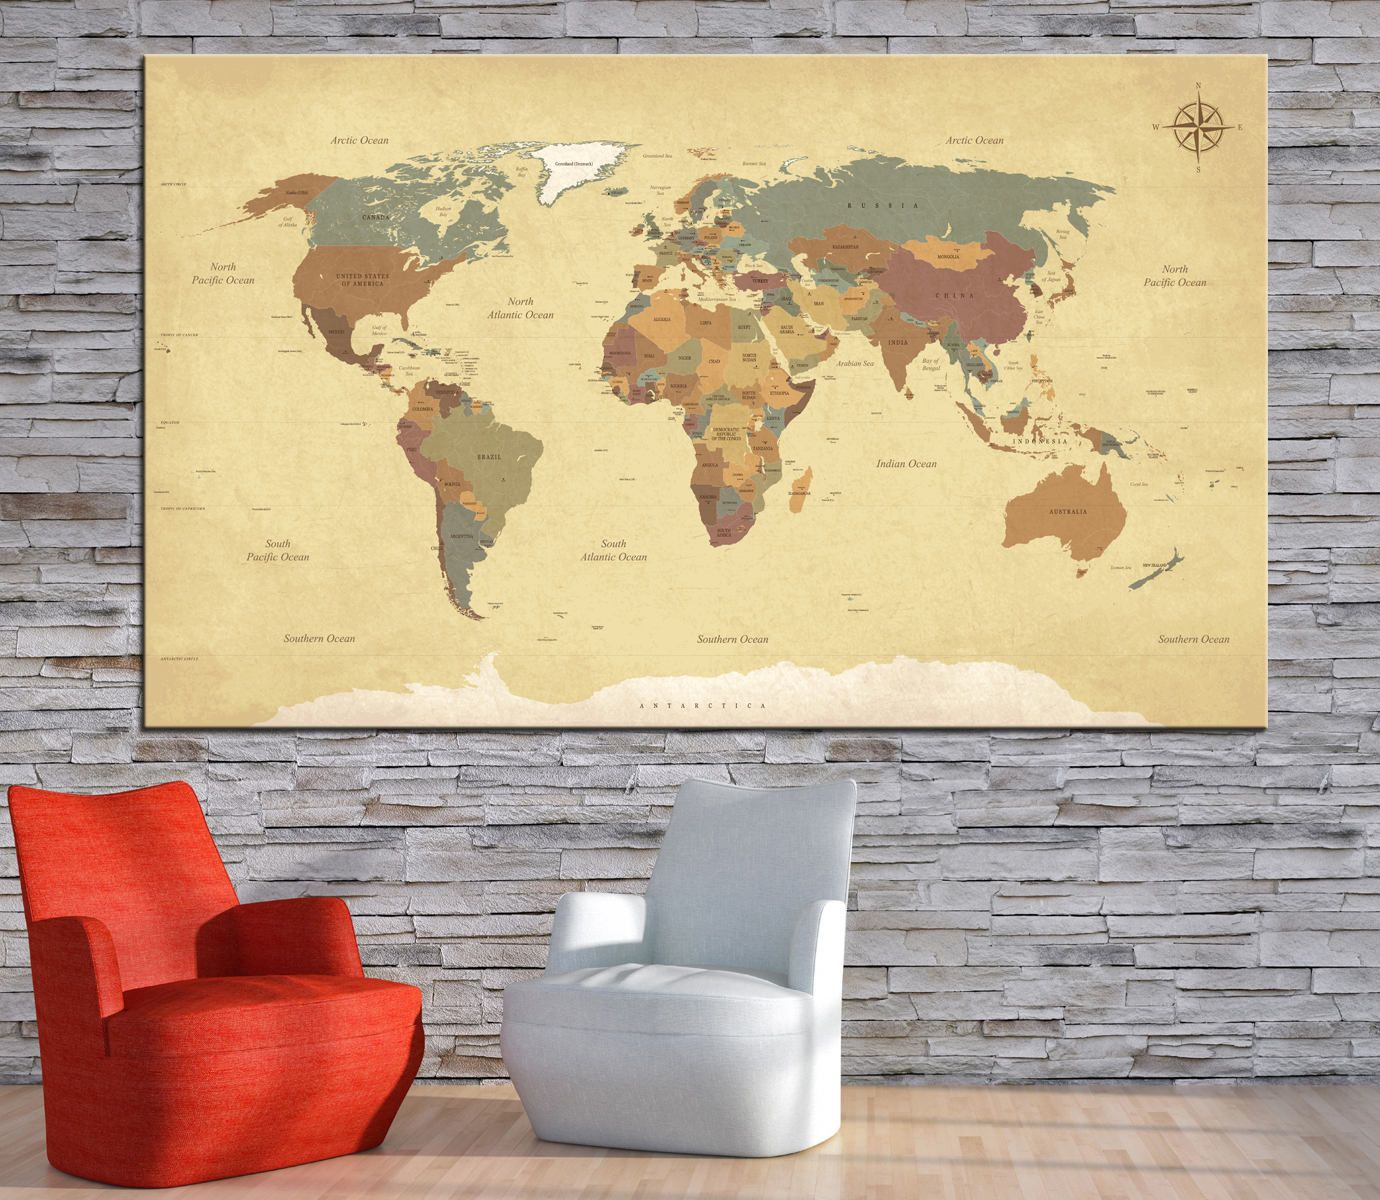 Large textured vintage world map whith countries names canvas print large textured vintage world map whith countries names canvas printextra large detailed world map gumiabroncs Choice Image